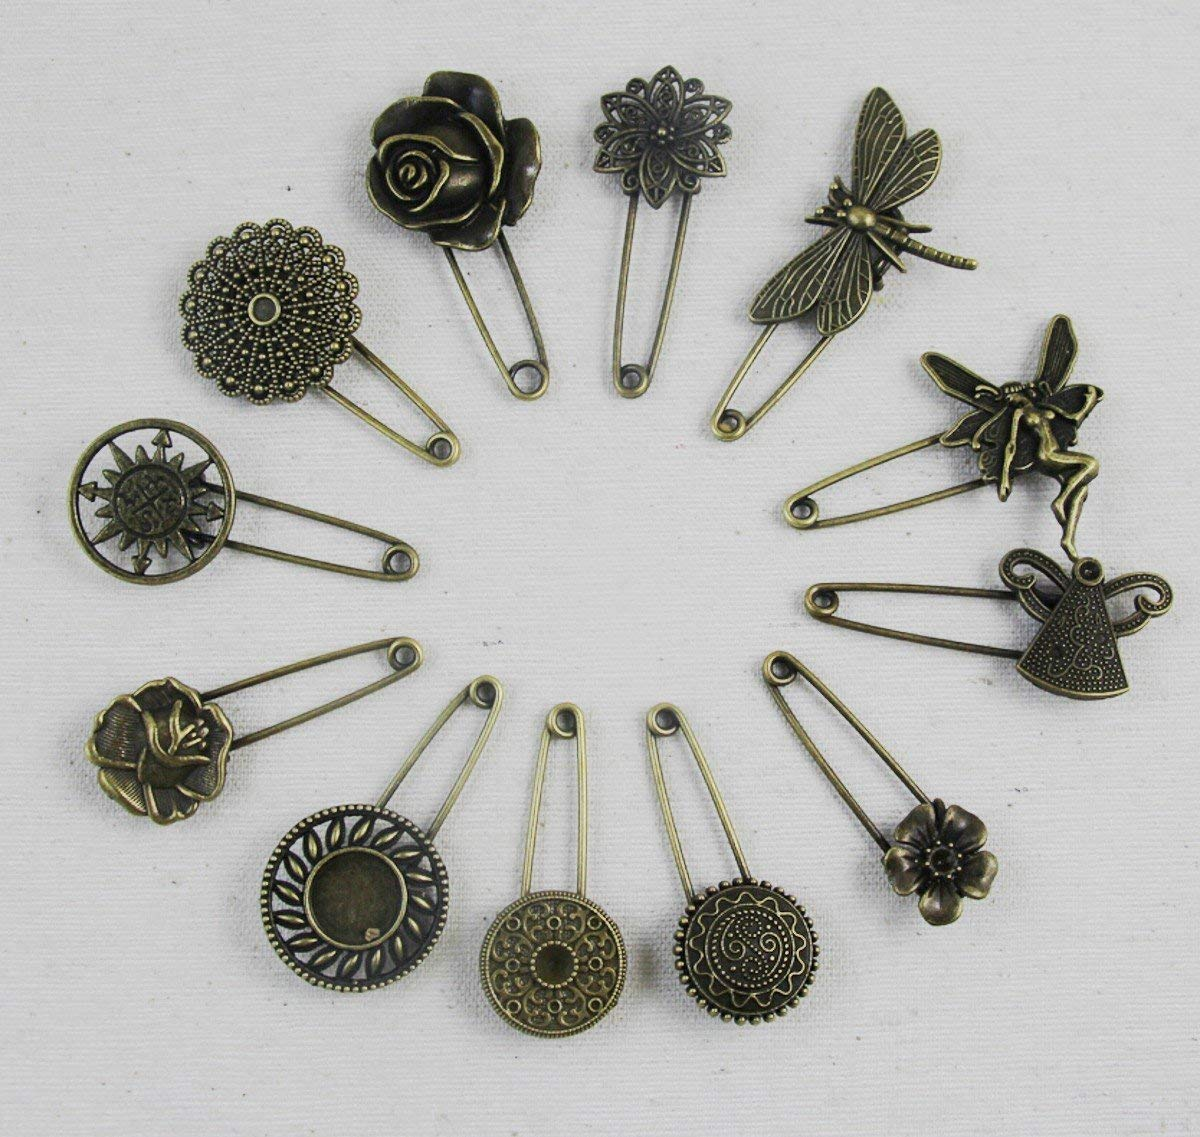 24ce0cc25 Get Quotations · WellieSTR Lot of 12PCS Vintage Style Steampunk Bronze  Brooch Safety Pin brooch pin Steampunk Findings,